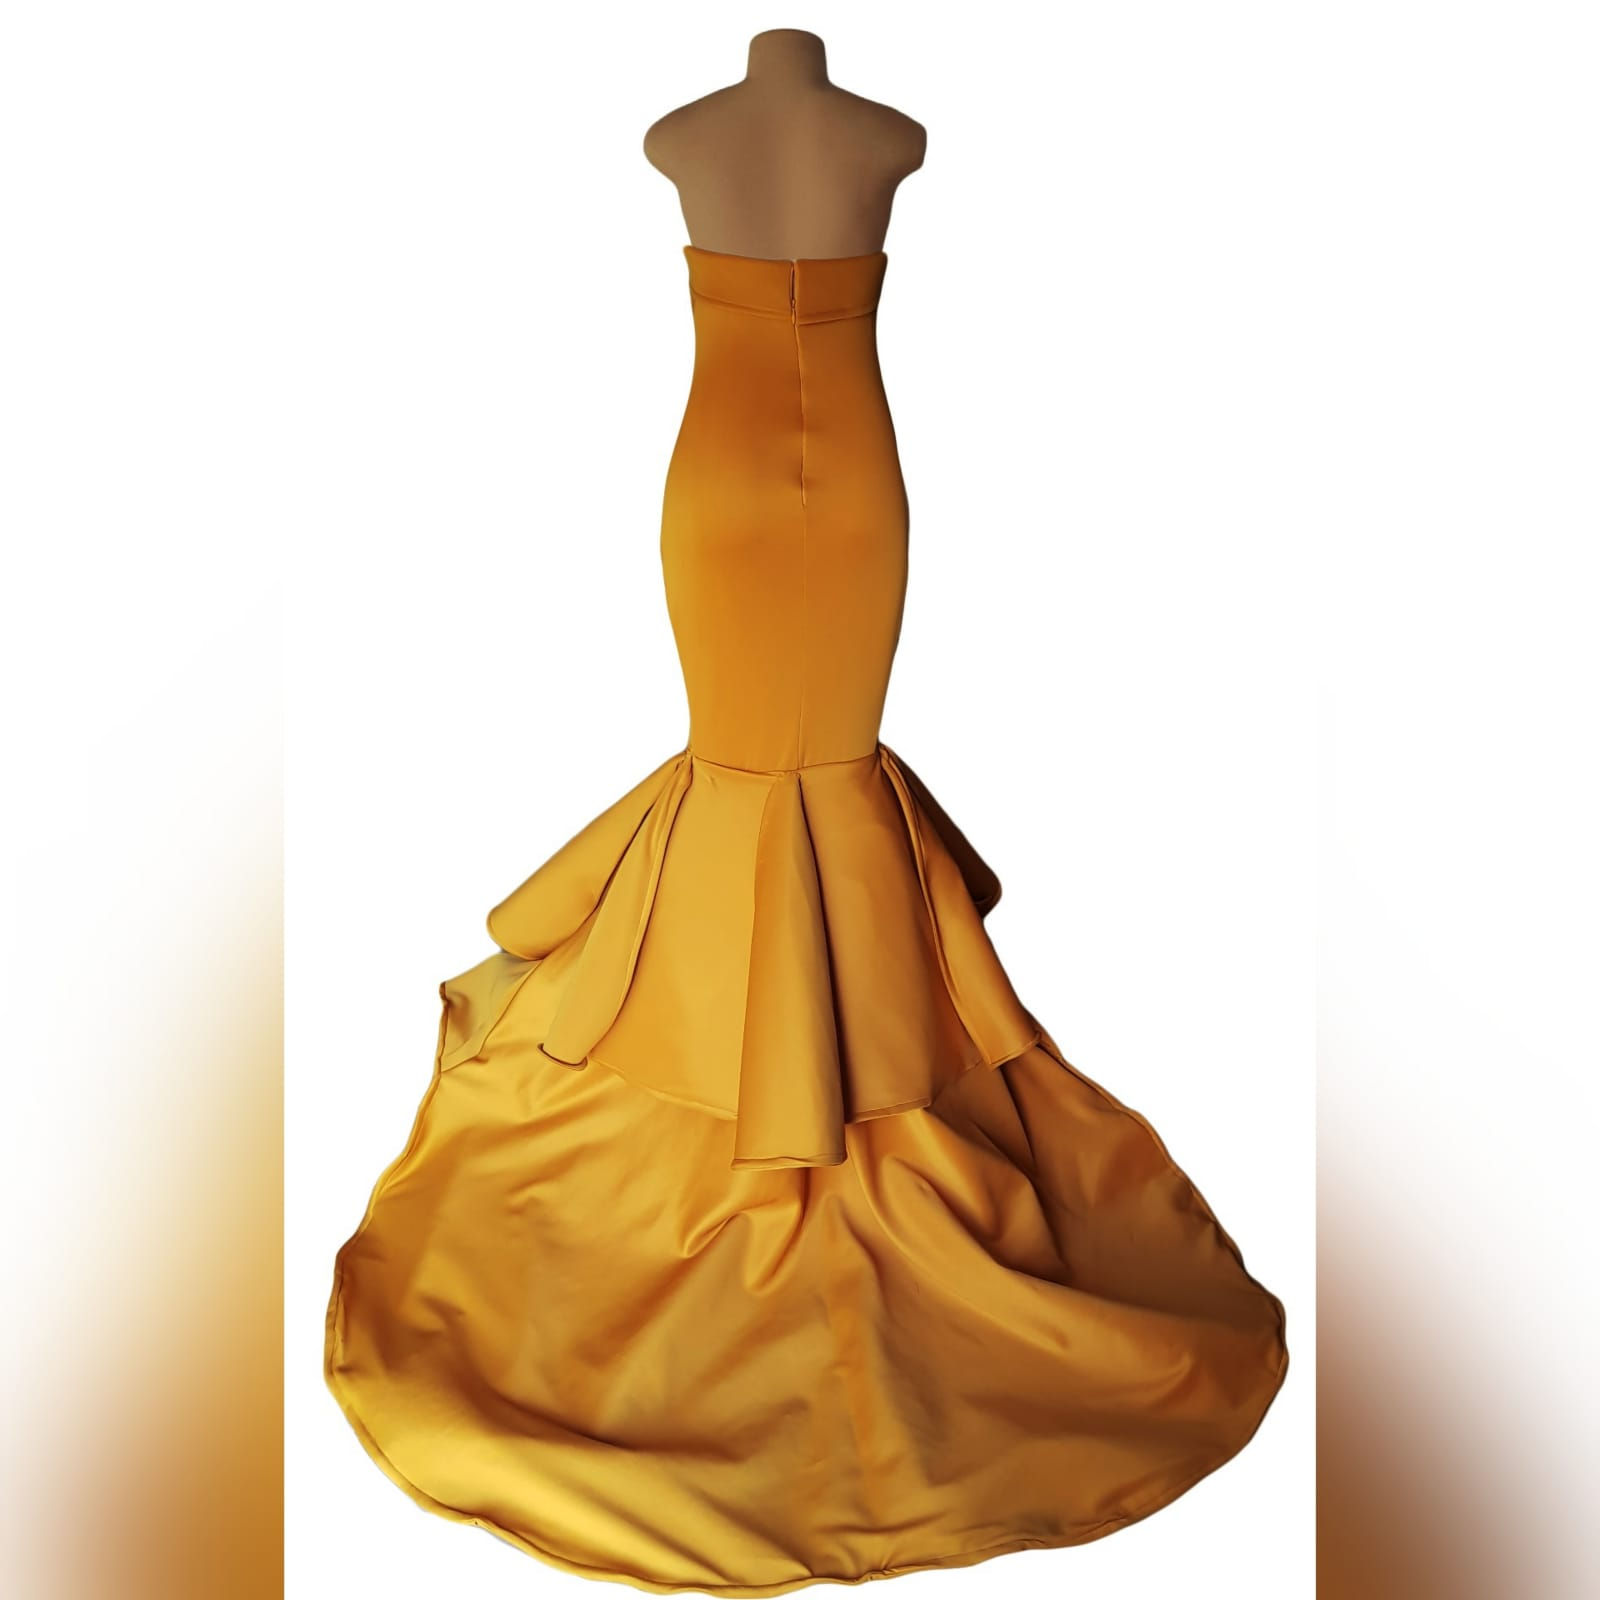 Mustard yellow sweetheart neckline mermaid prom dress 7 mustard yellow sweetheart neckline mermaid prom dress. With train and detailed stiff tubes